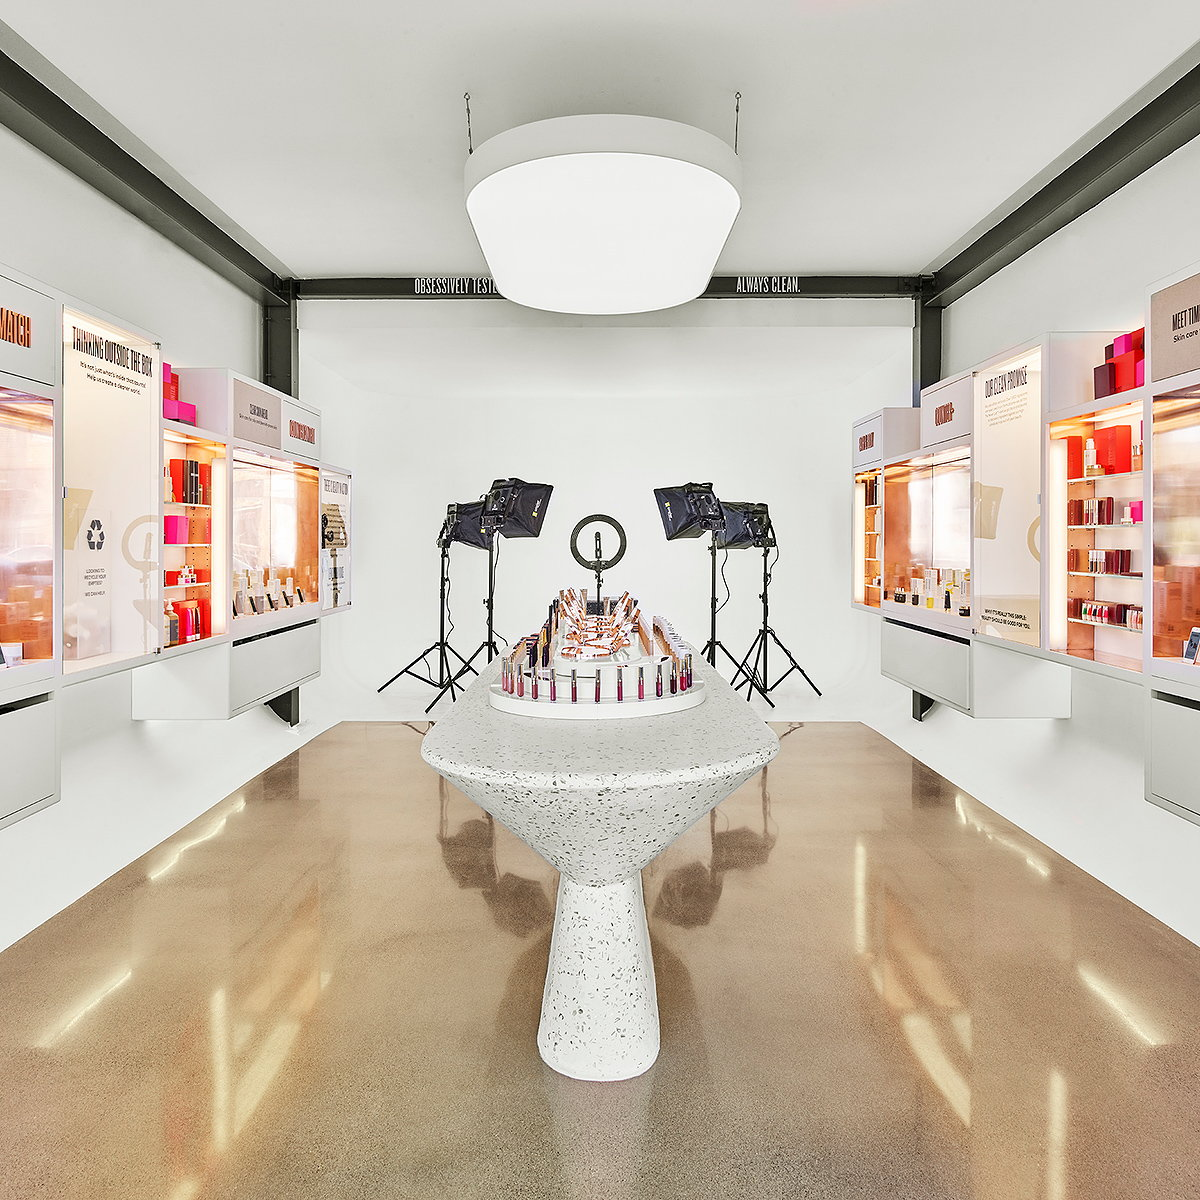 Mythology Designs Beautycounter's LA Flagship and Livestream Content Studio